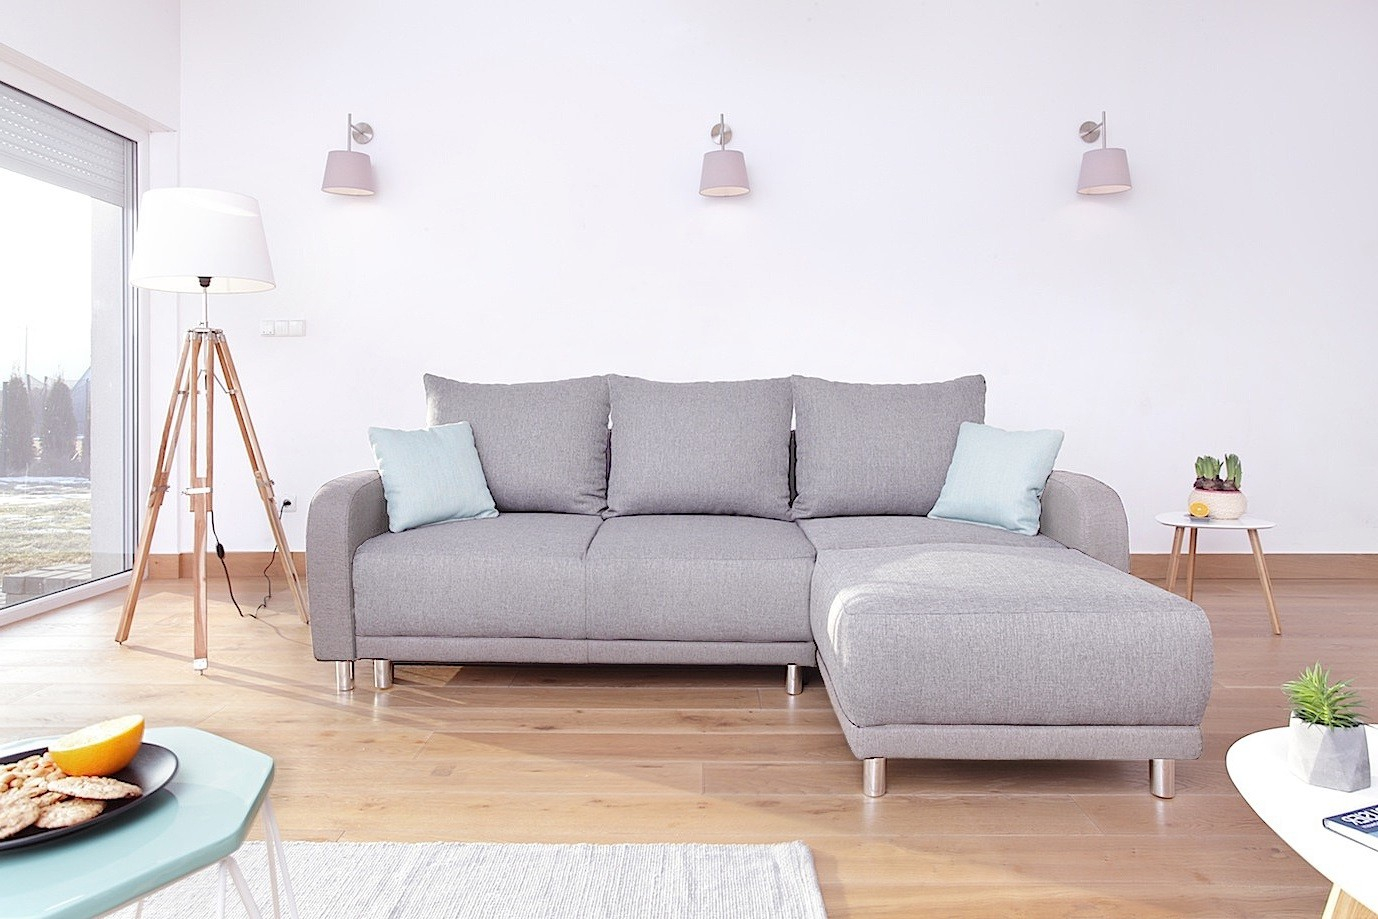 Canapé d angle convertible scandinave gris clair Minty